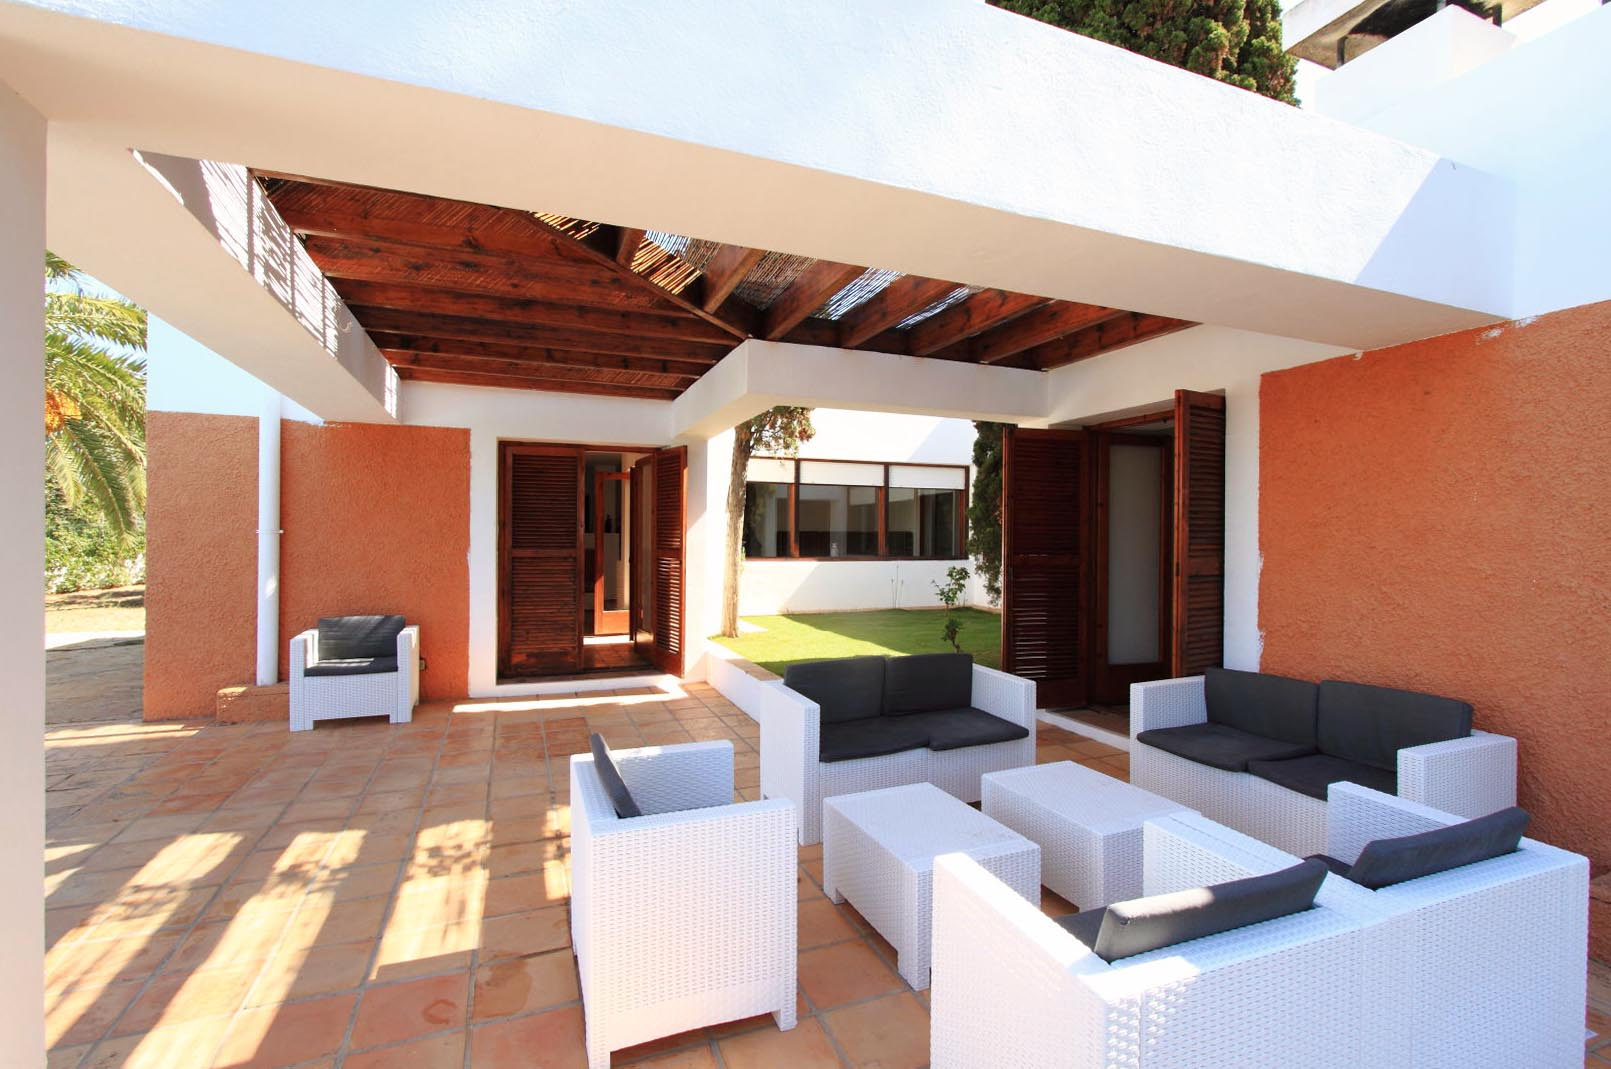 Architect house built in the heart of the village of Jesús